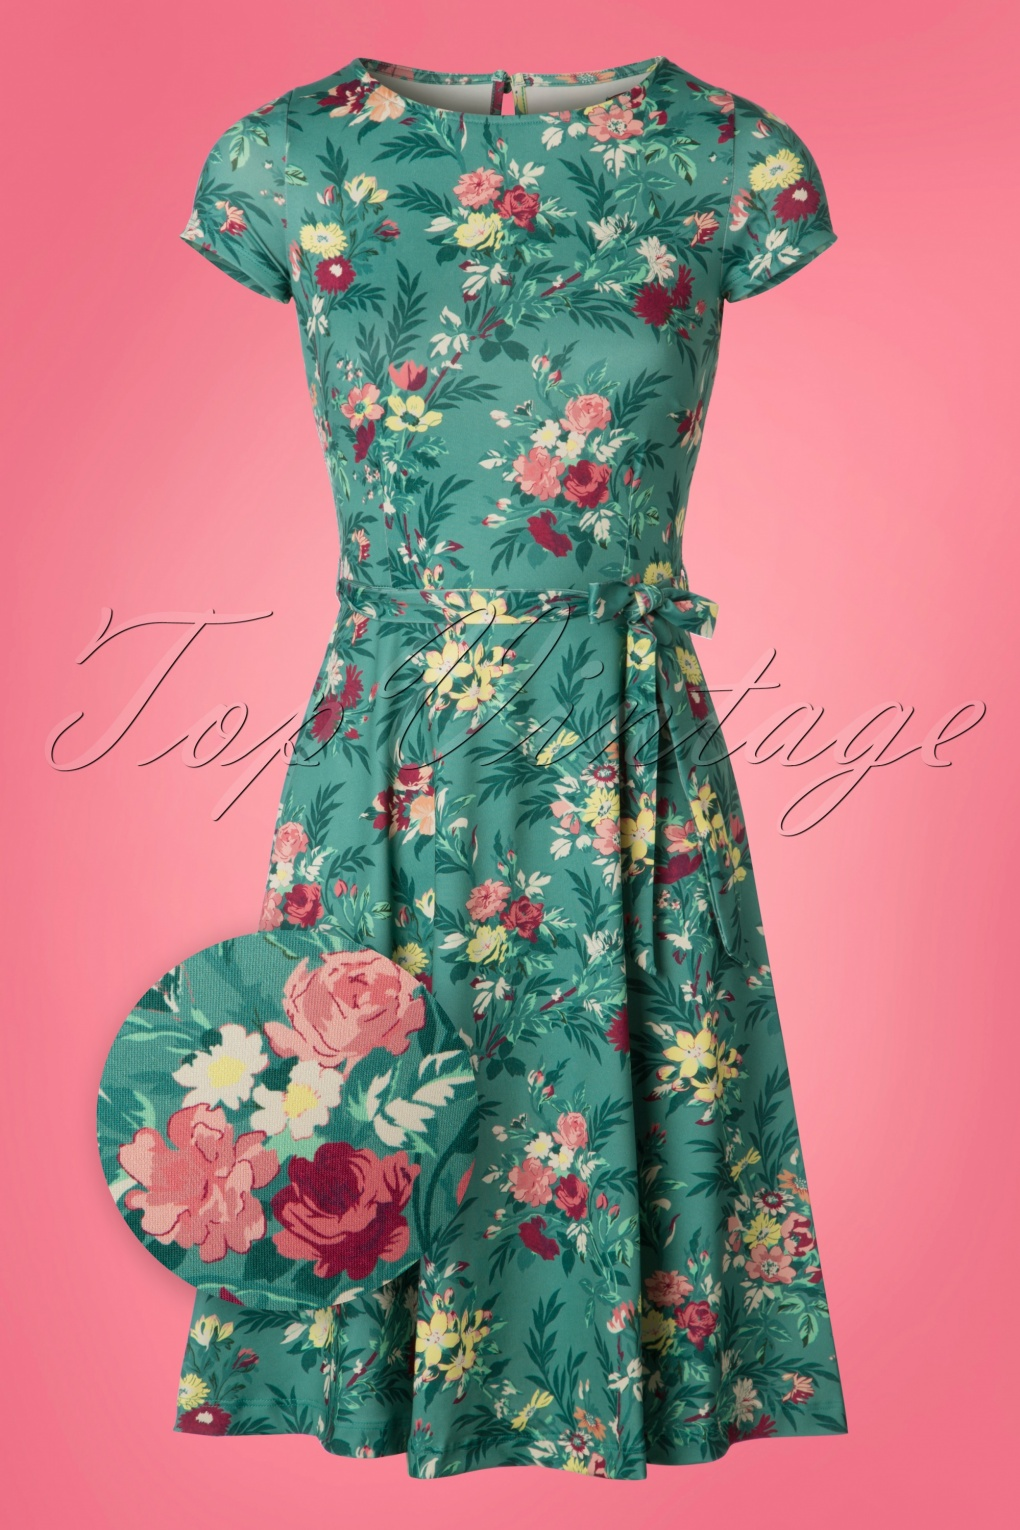 1960s Mad Men Dresses and Clothing Styles 60s Betty Woodrose Swing Dress in Emerald Blue £88.52 AT vintagedancer.com